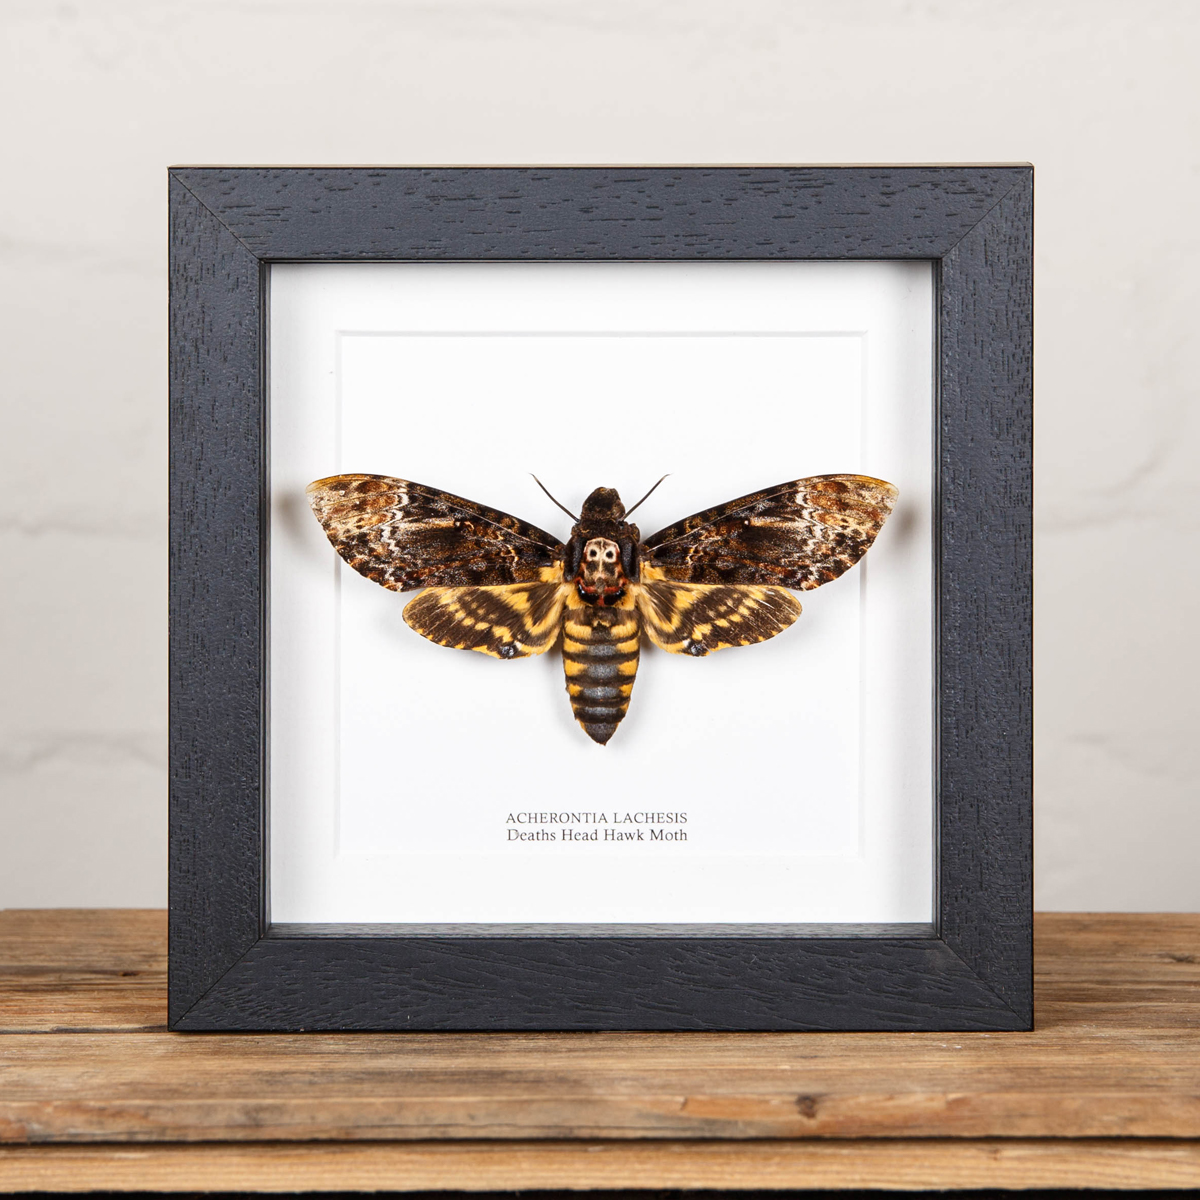 Deaths Head Hawk Moth in Box Frame (Acherontia lachesis)